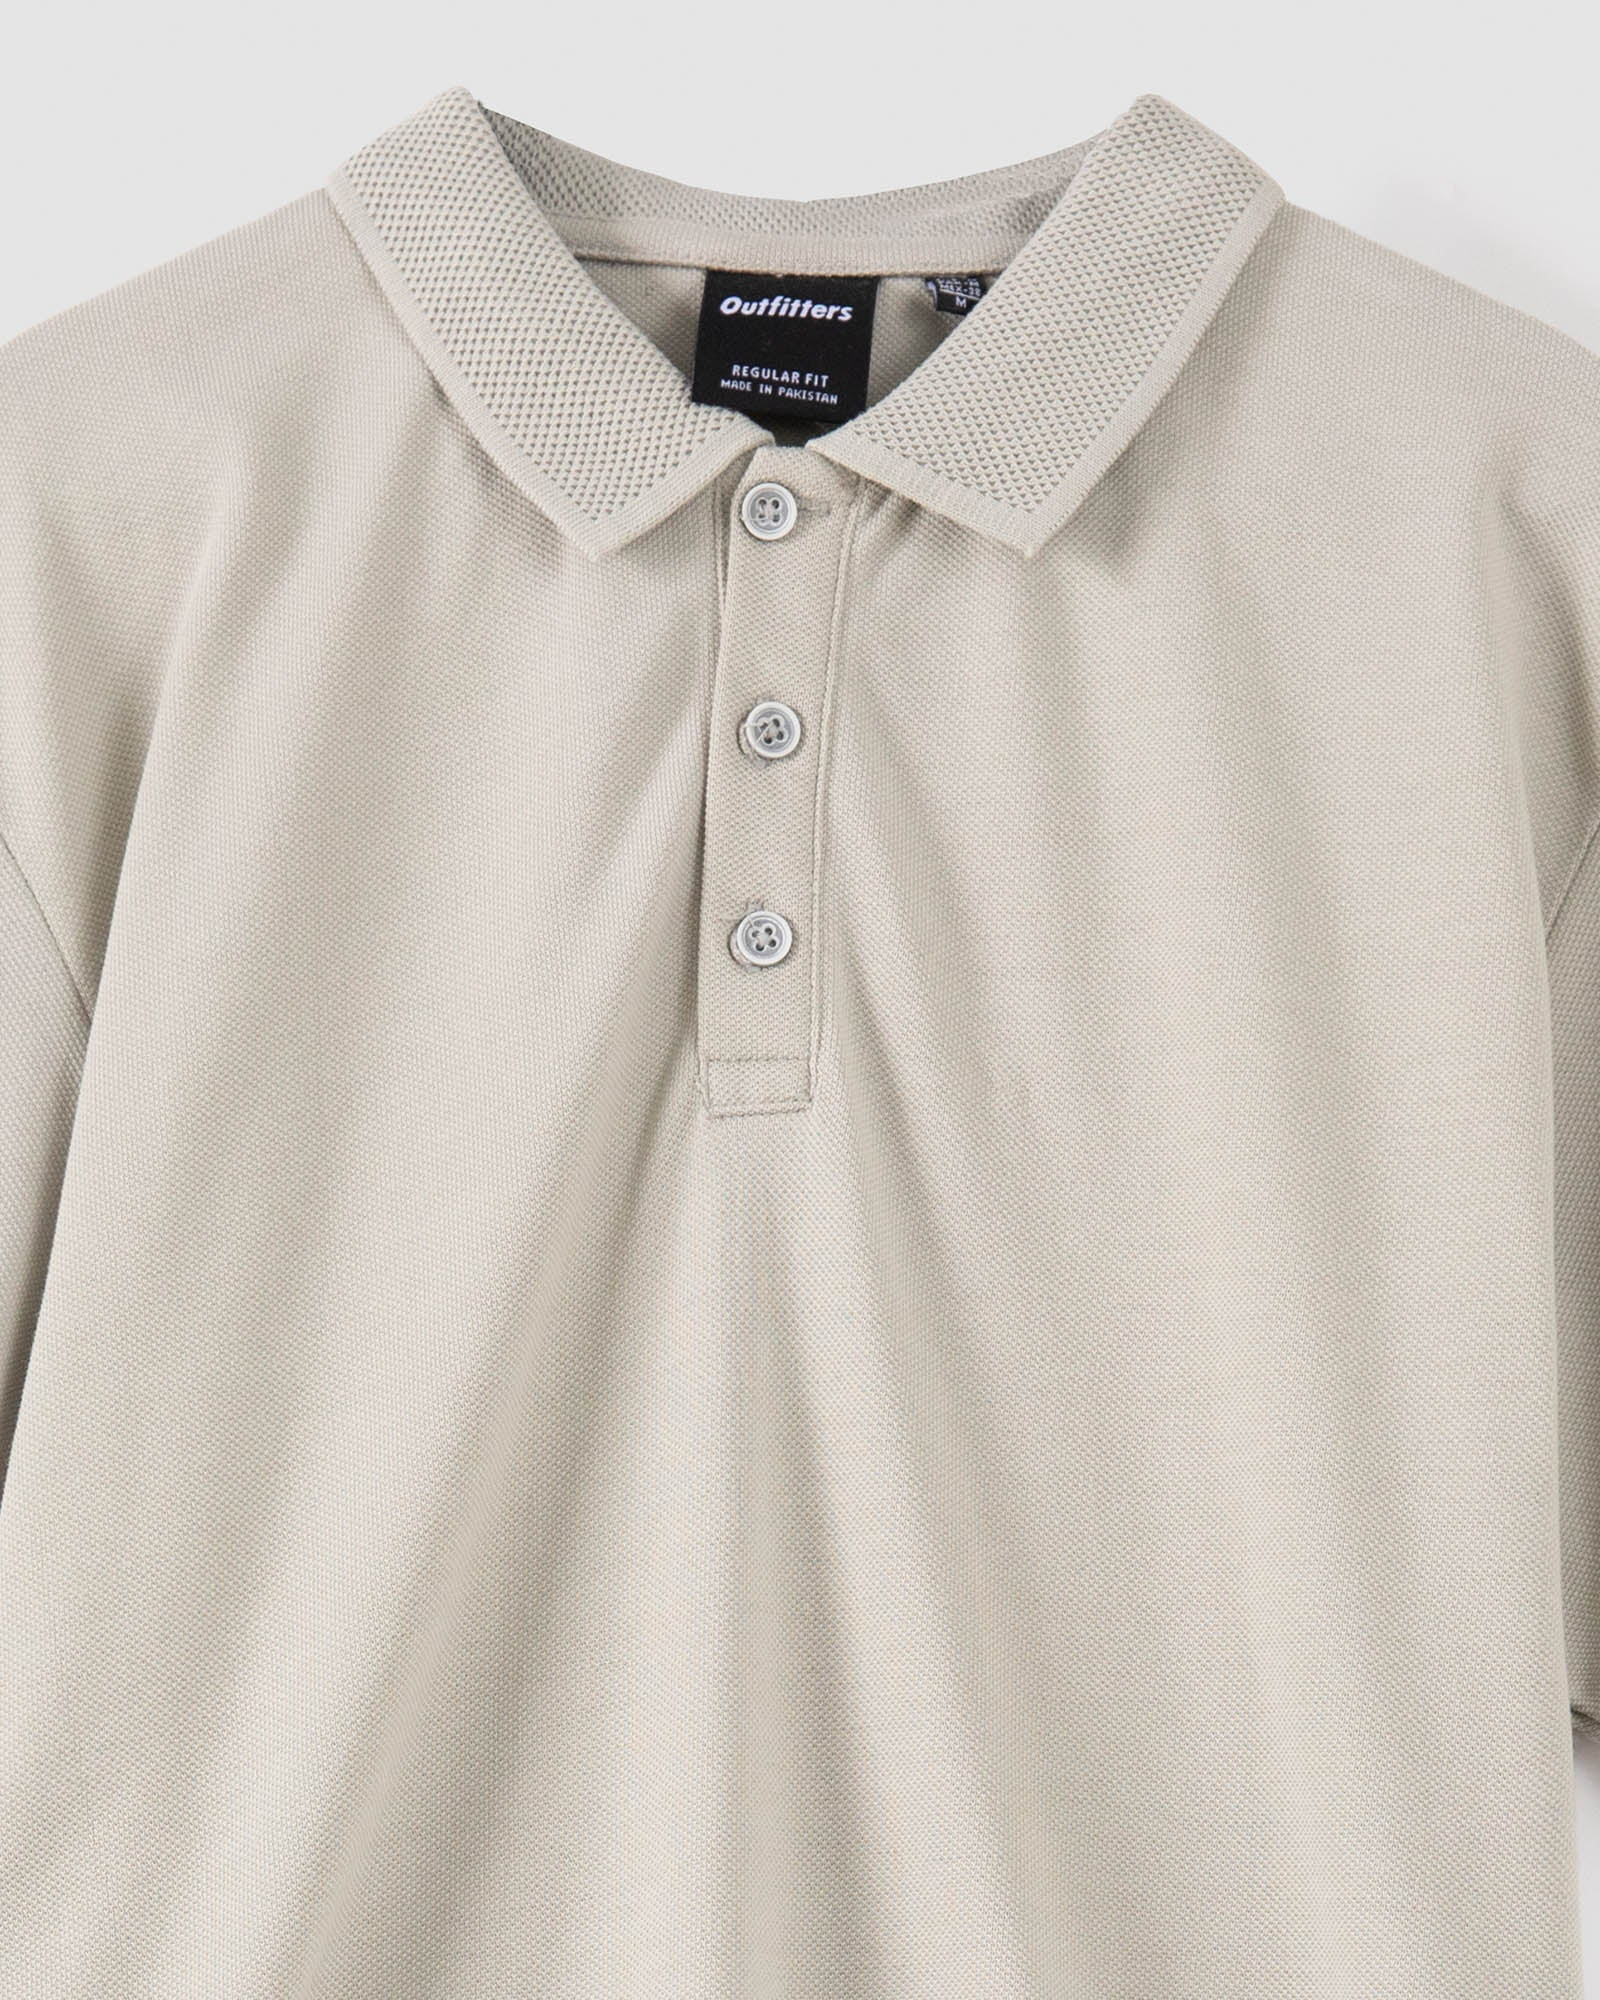 Polo Tee with Perforated Textured Collar